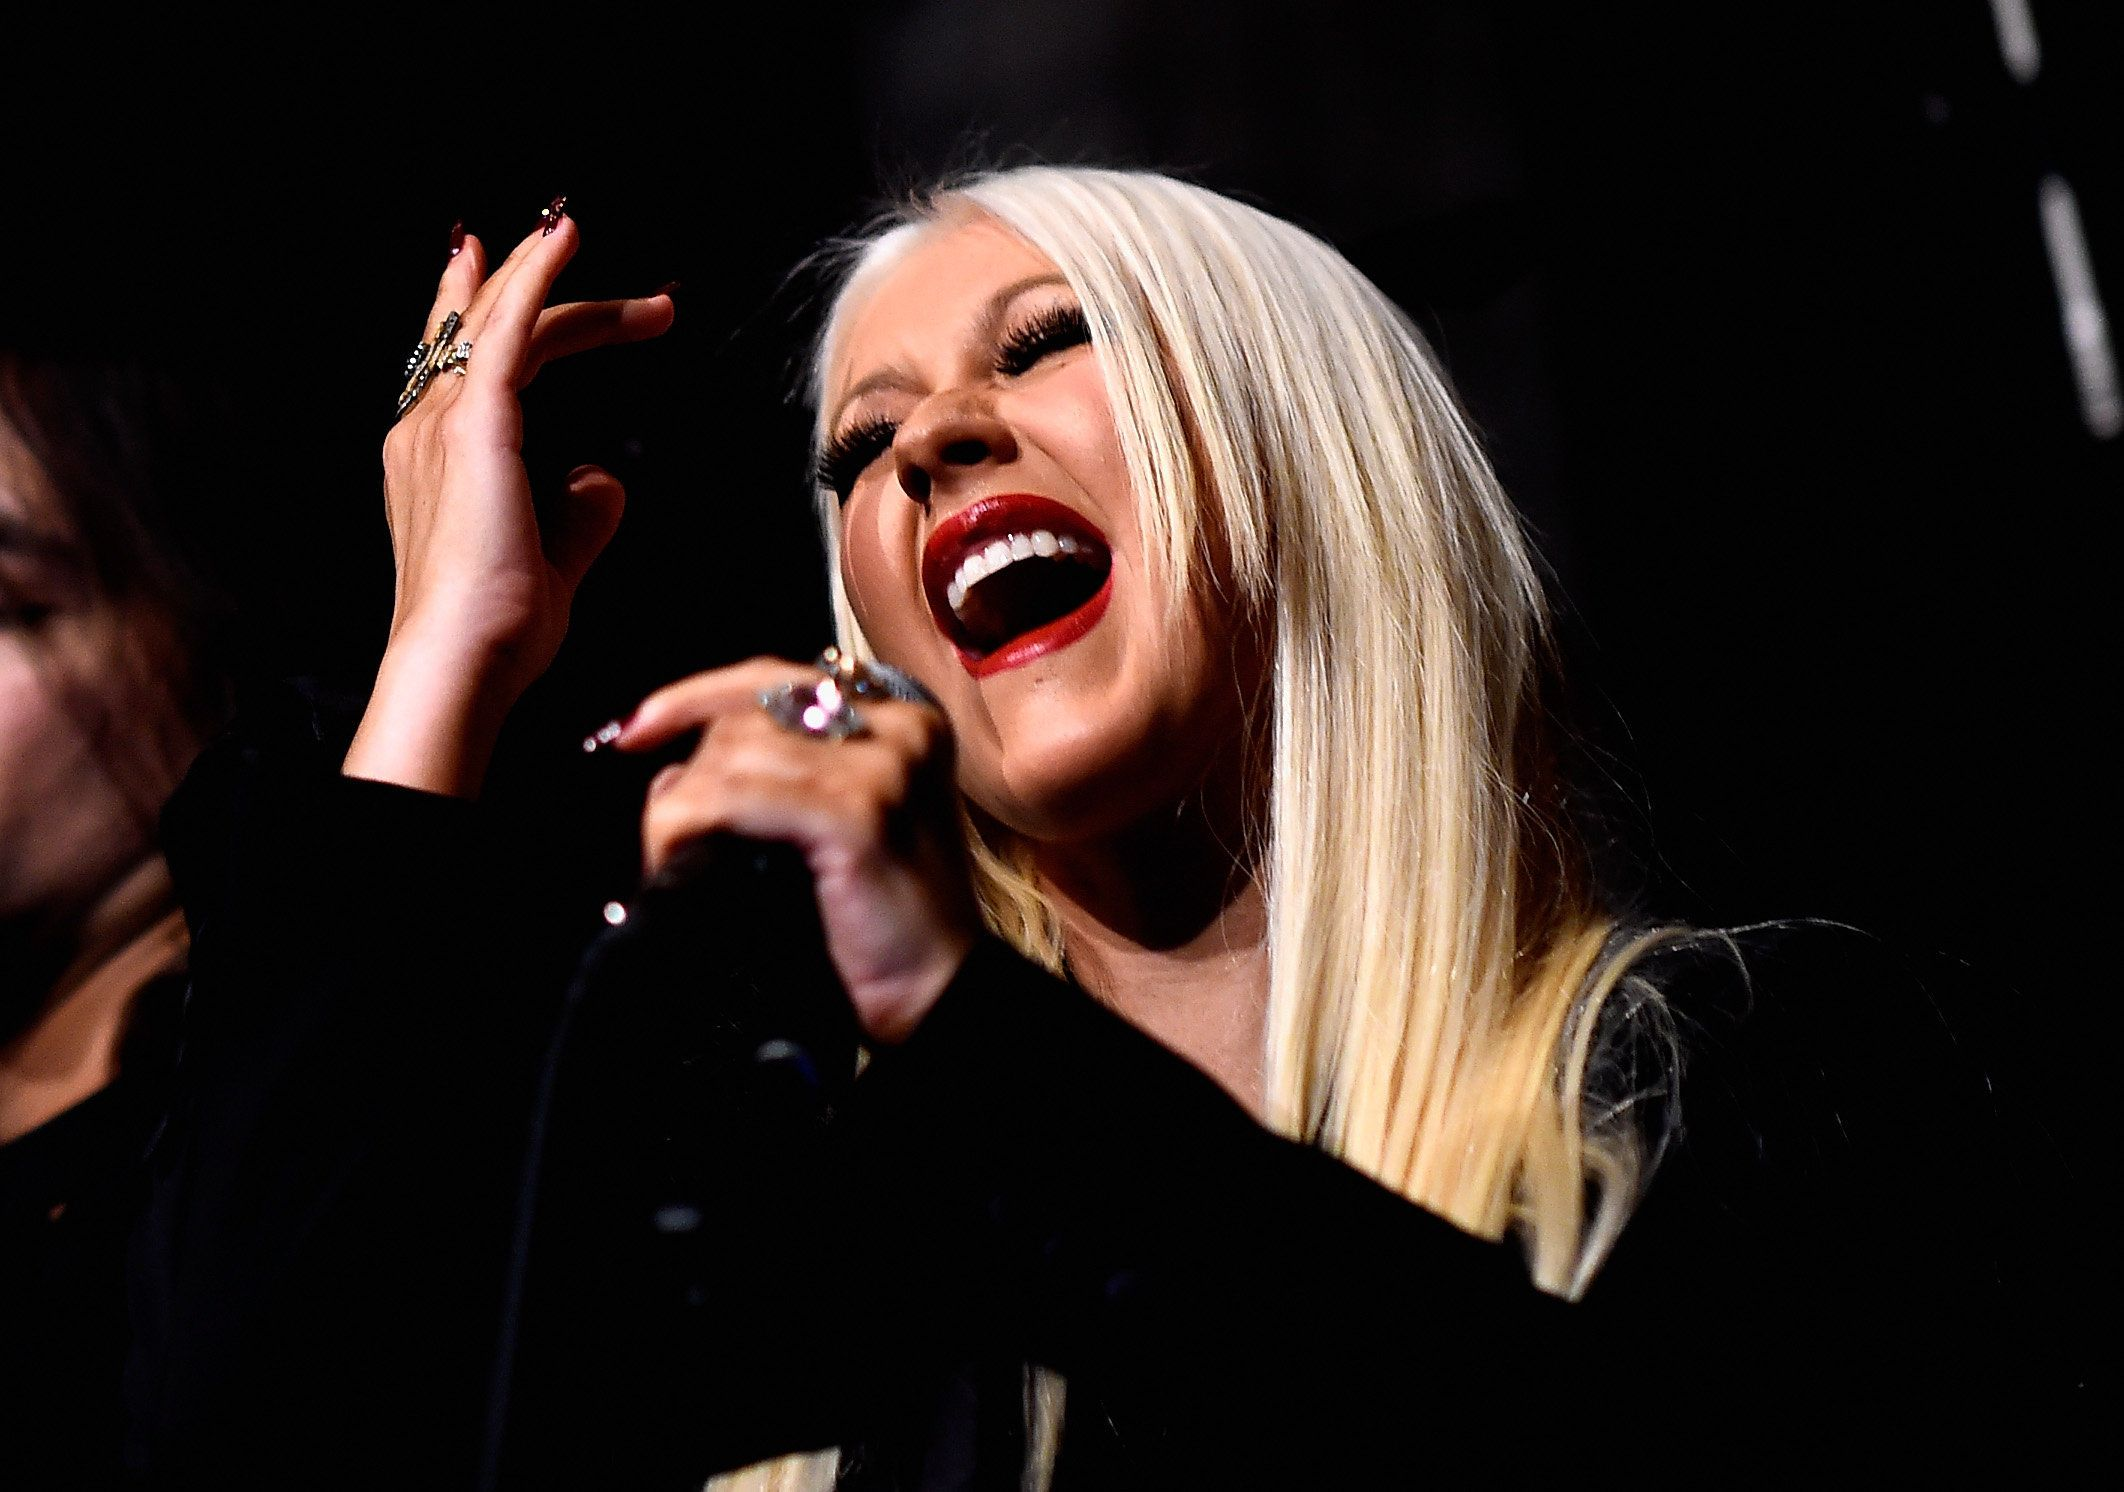 LOS ANGELES, CA - JANUARY 05:  Singer Christina Aguilera performs at the Linda Perry Celebration For The Song 'Hands Of Love' From The Film 'Freeheld' on January 5, 2016 in Los Angeles, California.  (Photo by Frazer Harrison/Getty Images)